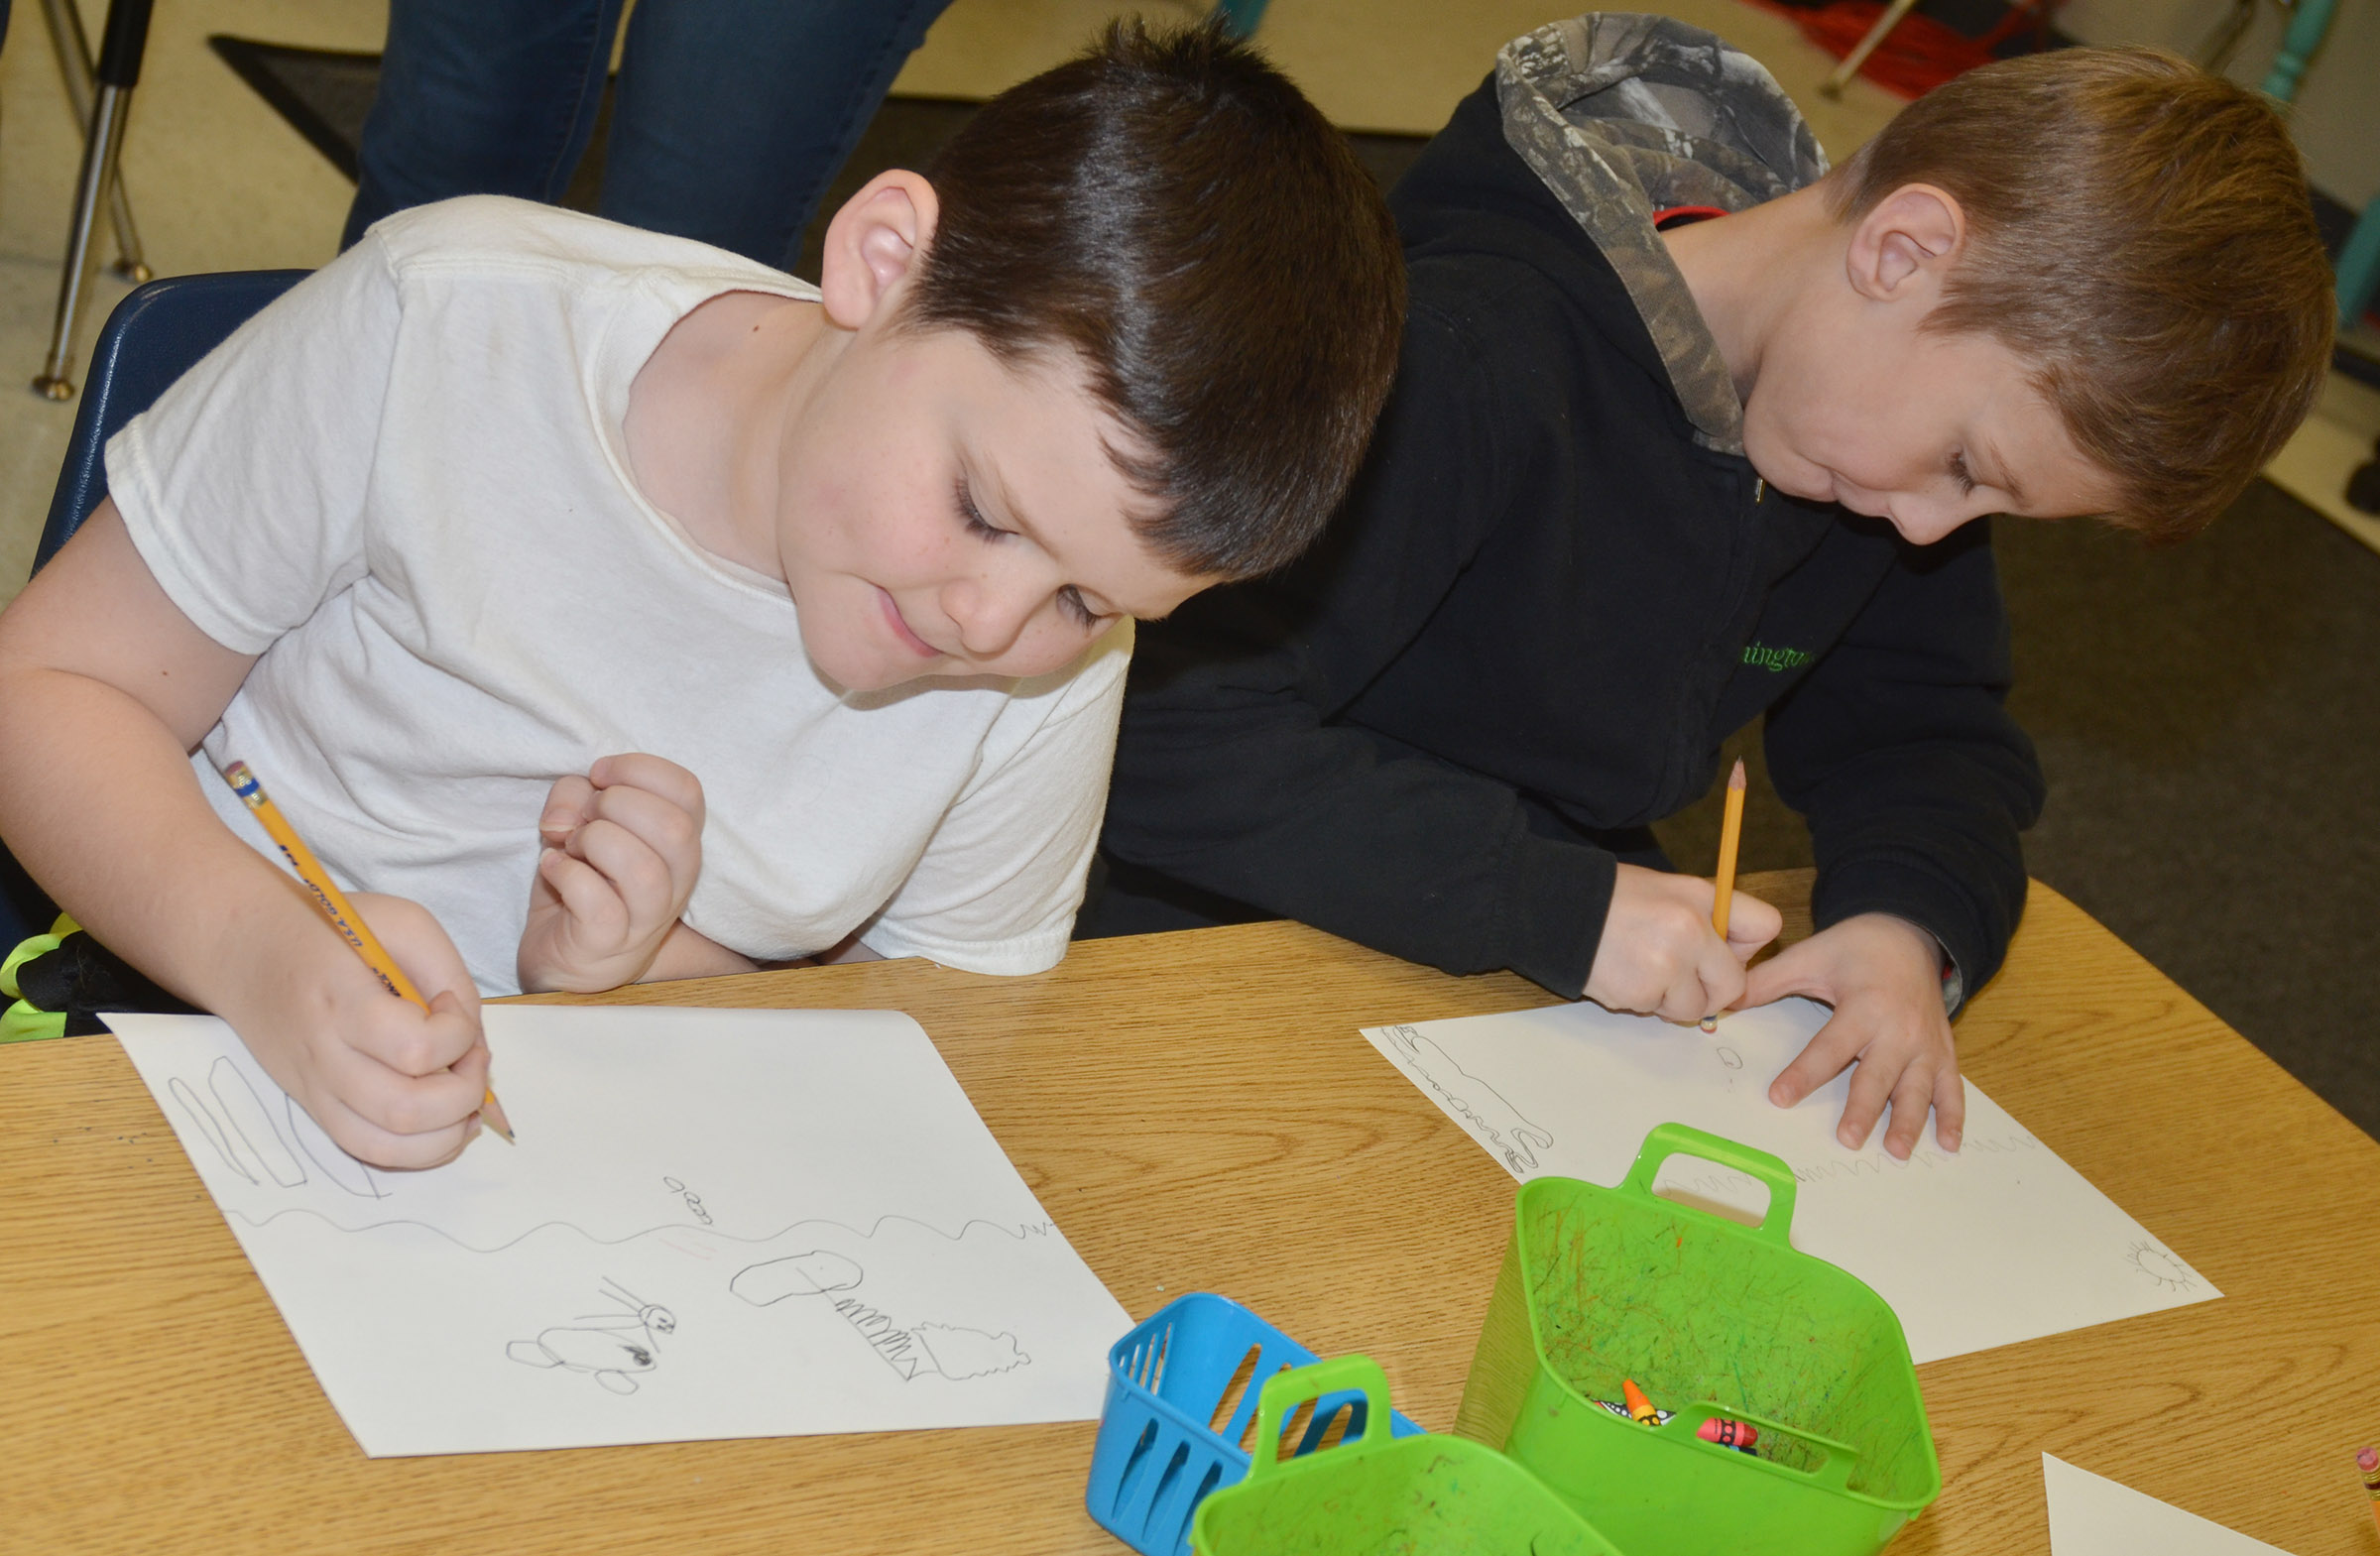 CES second-graders Weston Veltman, at left, and Isaya Adams draw their seascapes.